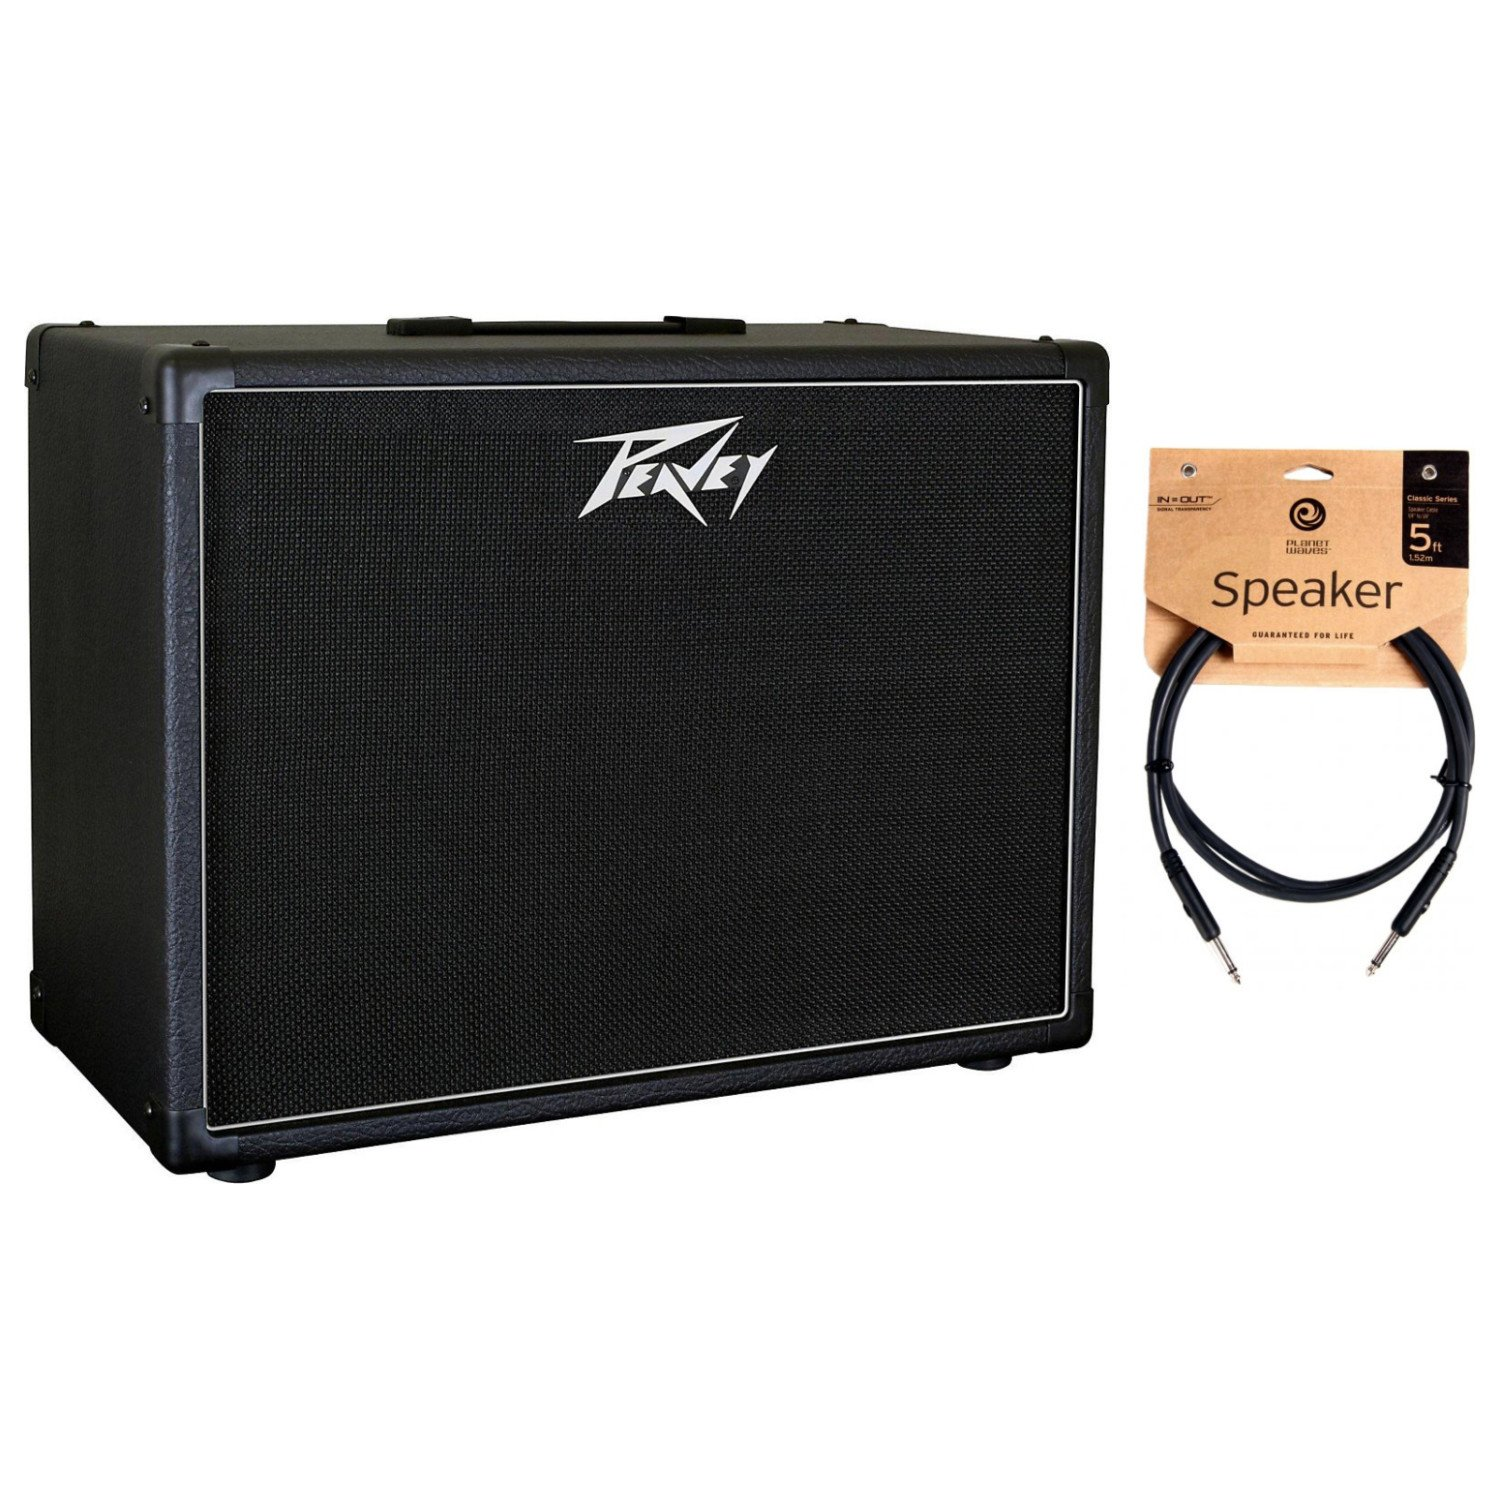 Peavey 112-6 Guitar Enclosure for 6505 Mini Head w/ Speaker Cable by Peavey